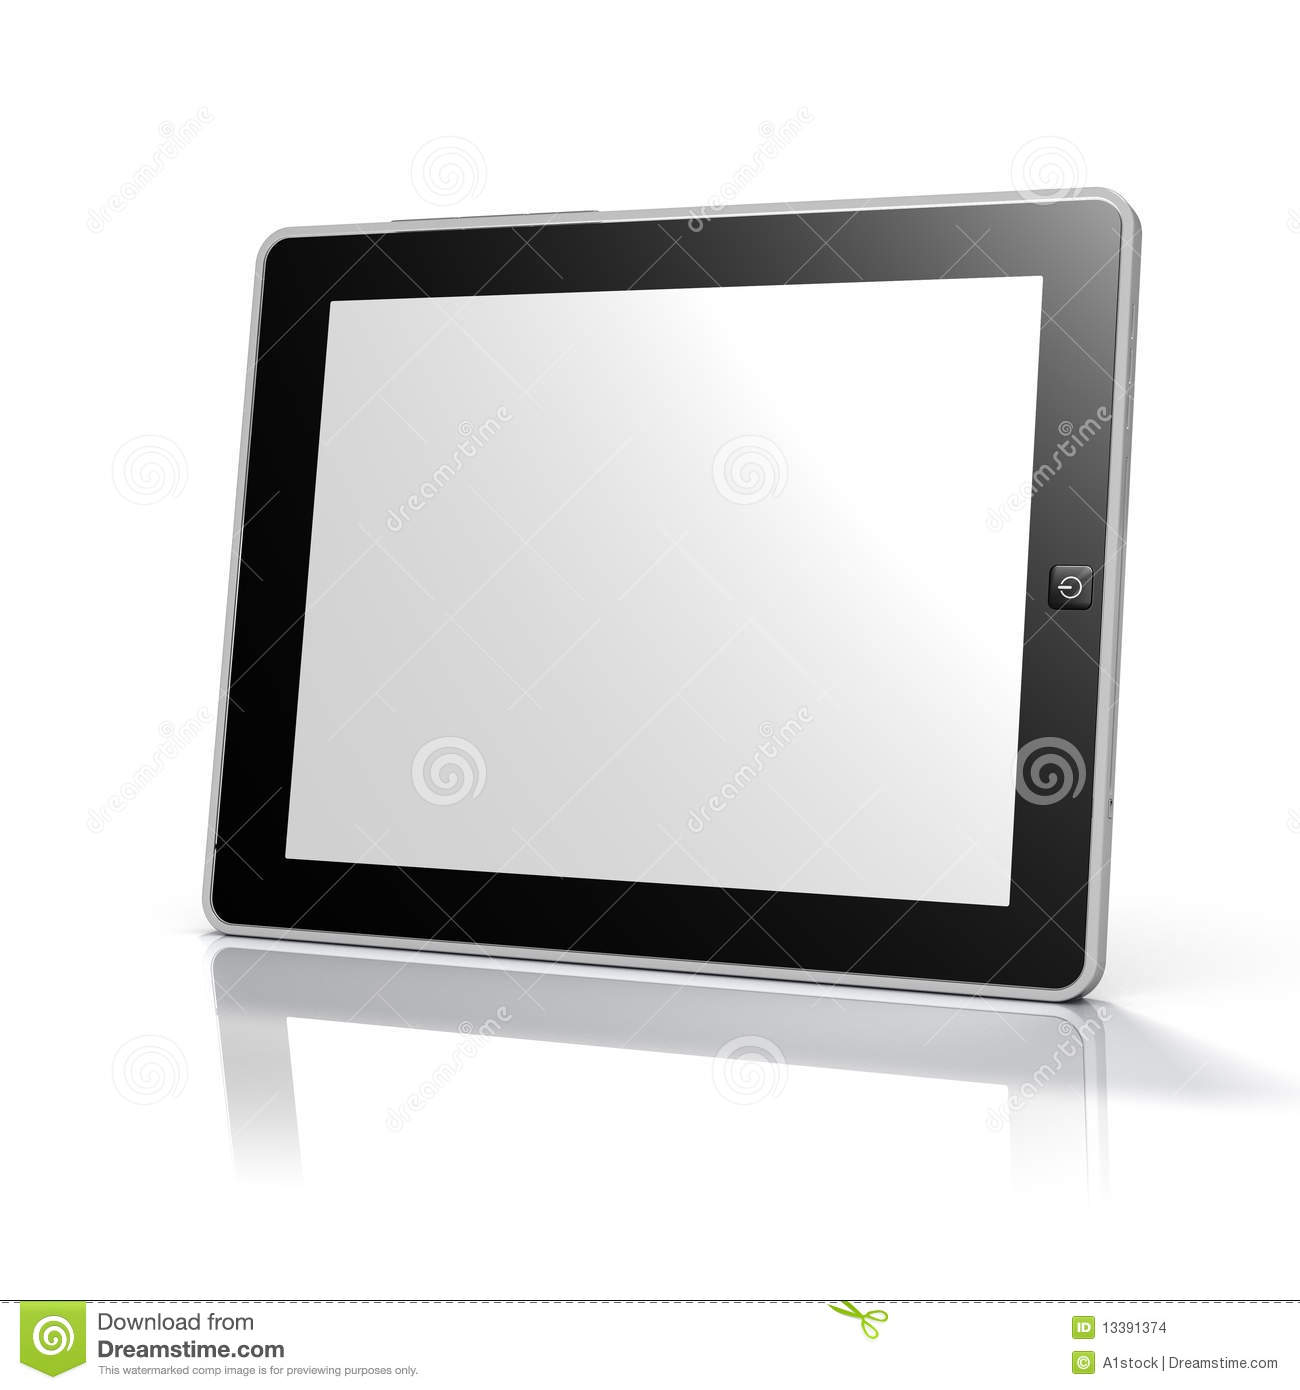 tablet computer ebook reader clipping path royalty free stock image. Black Bedroom Furniture Sets. Home Design Ideas